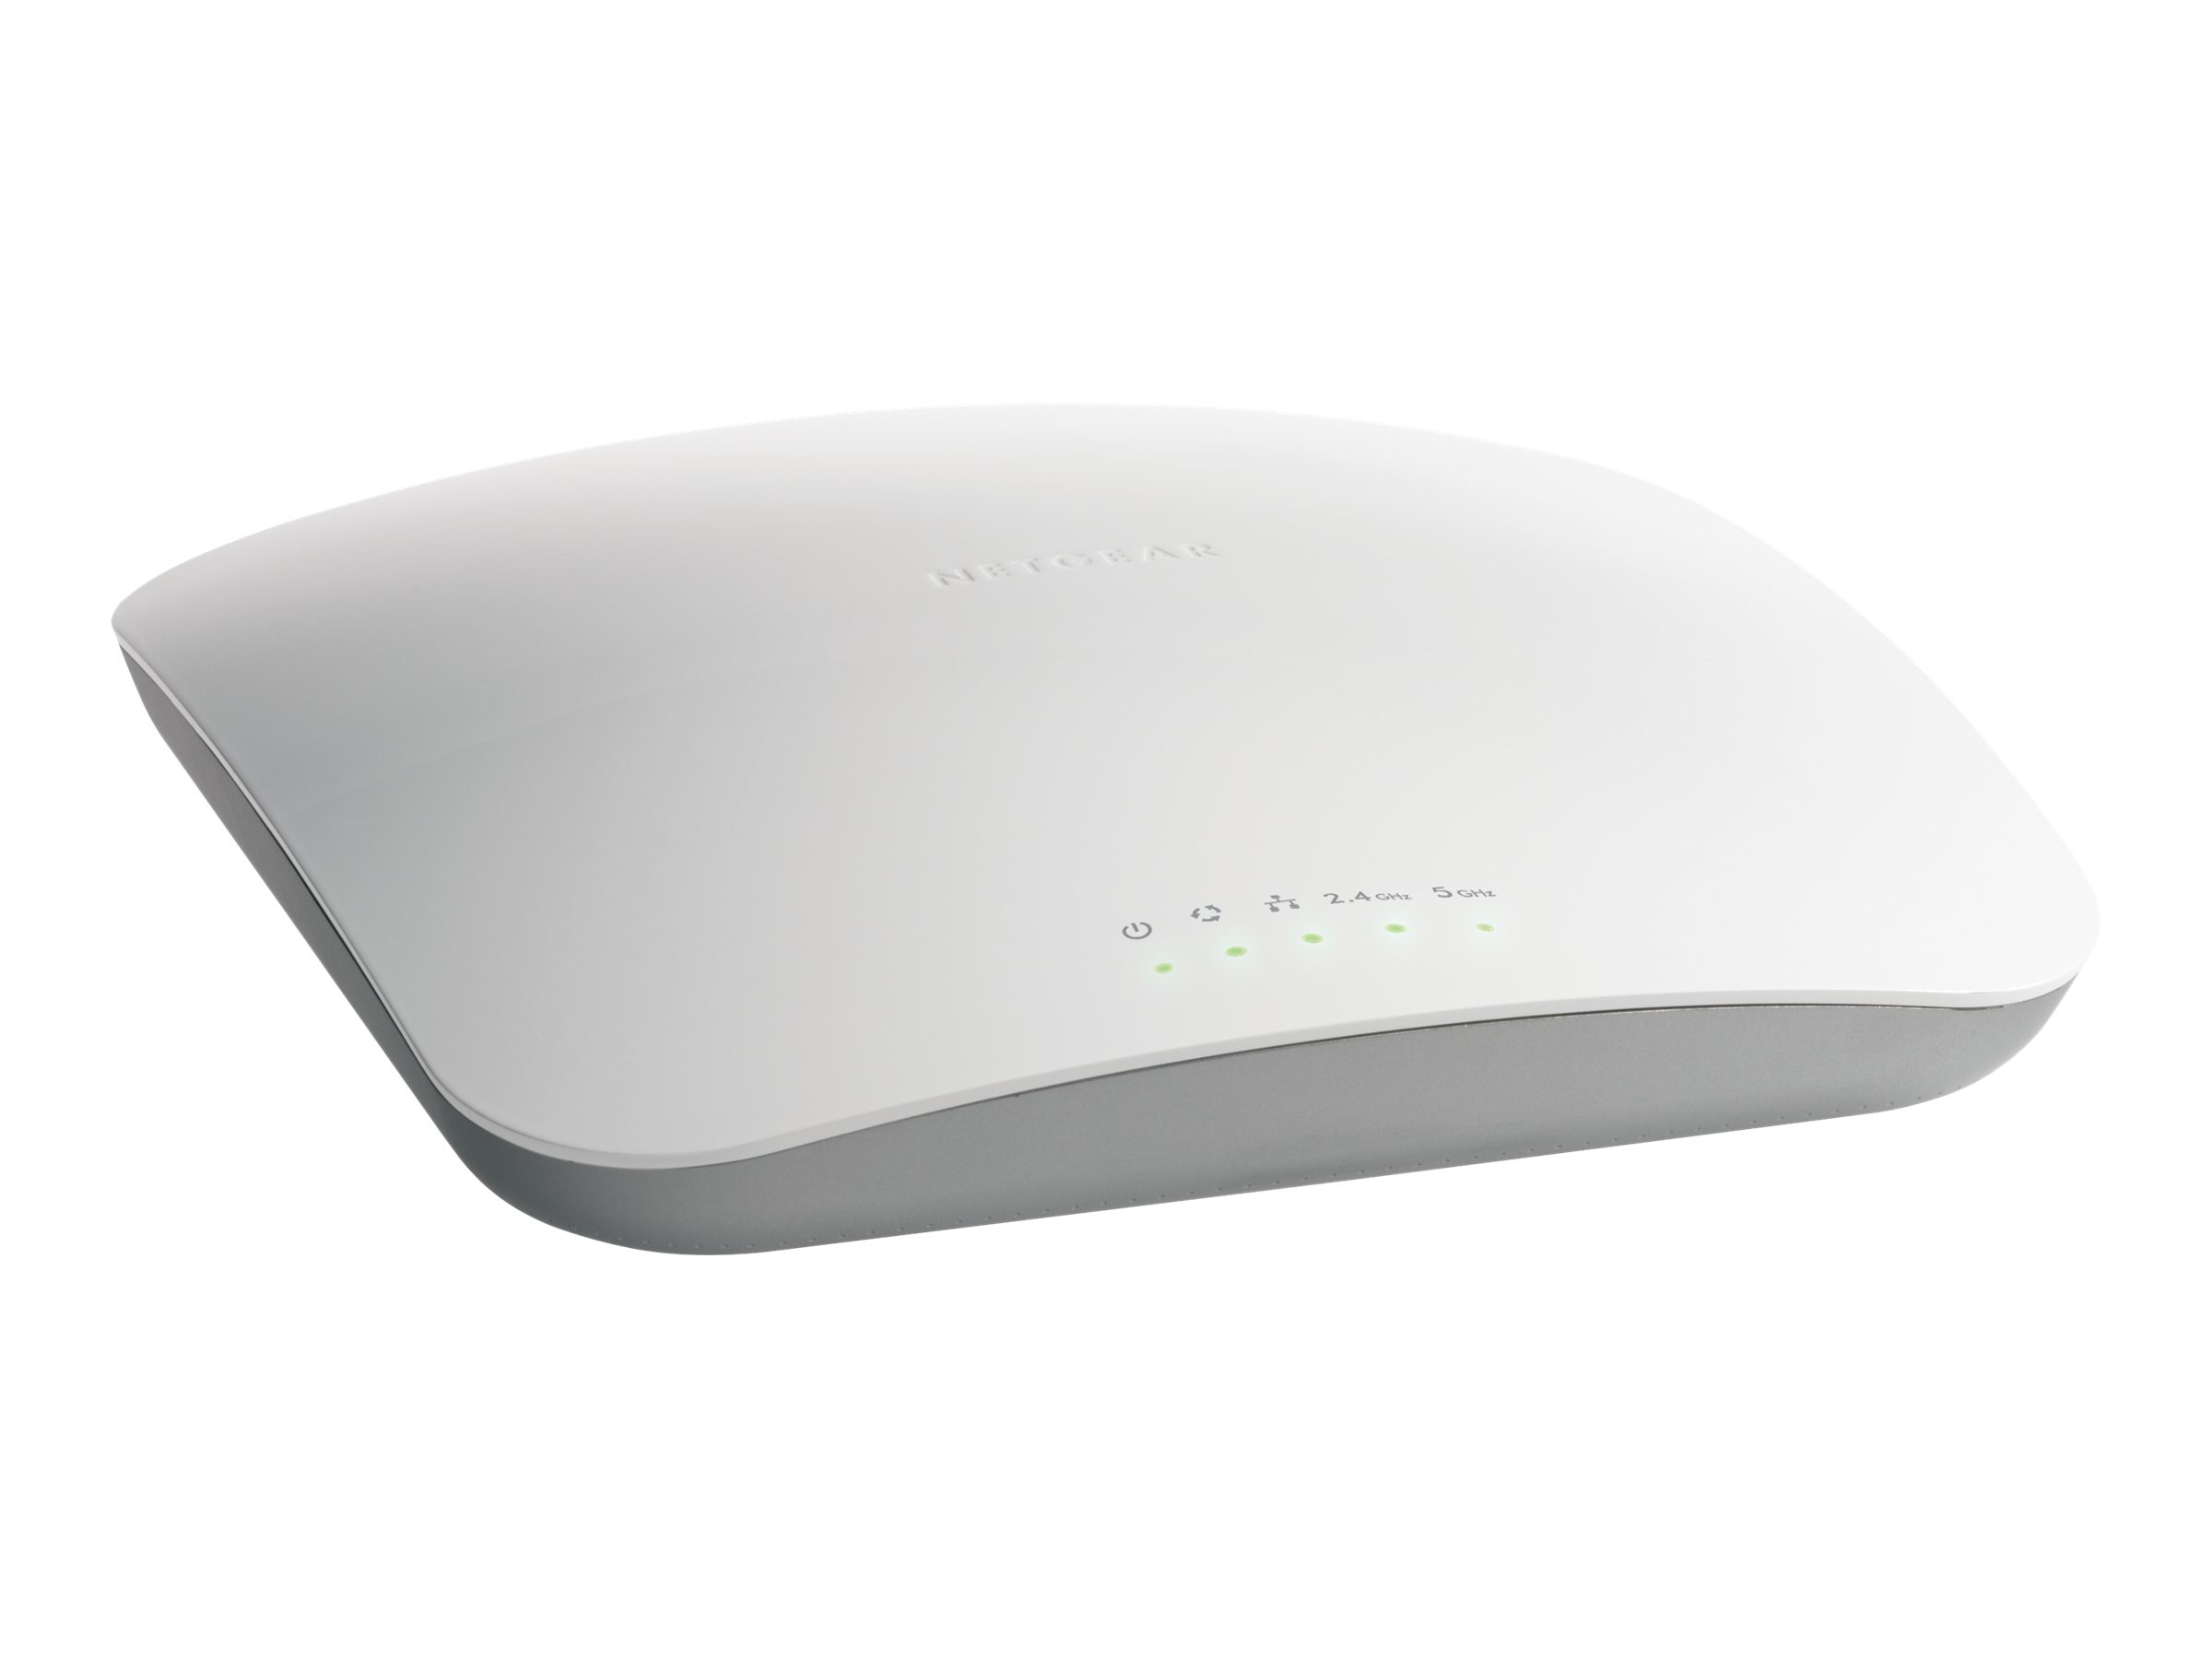 Netgear ProSafe Dual Band Wireless-N Access Point 802.11 a b g n, WNDAP360-100NAS, 12921827, Wireless Access Points & Bridges